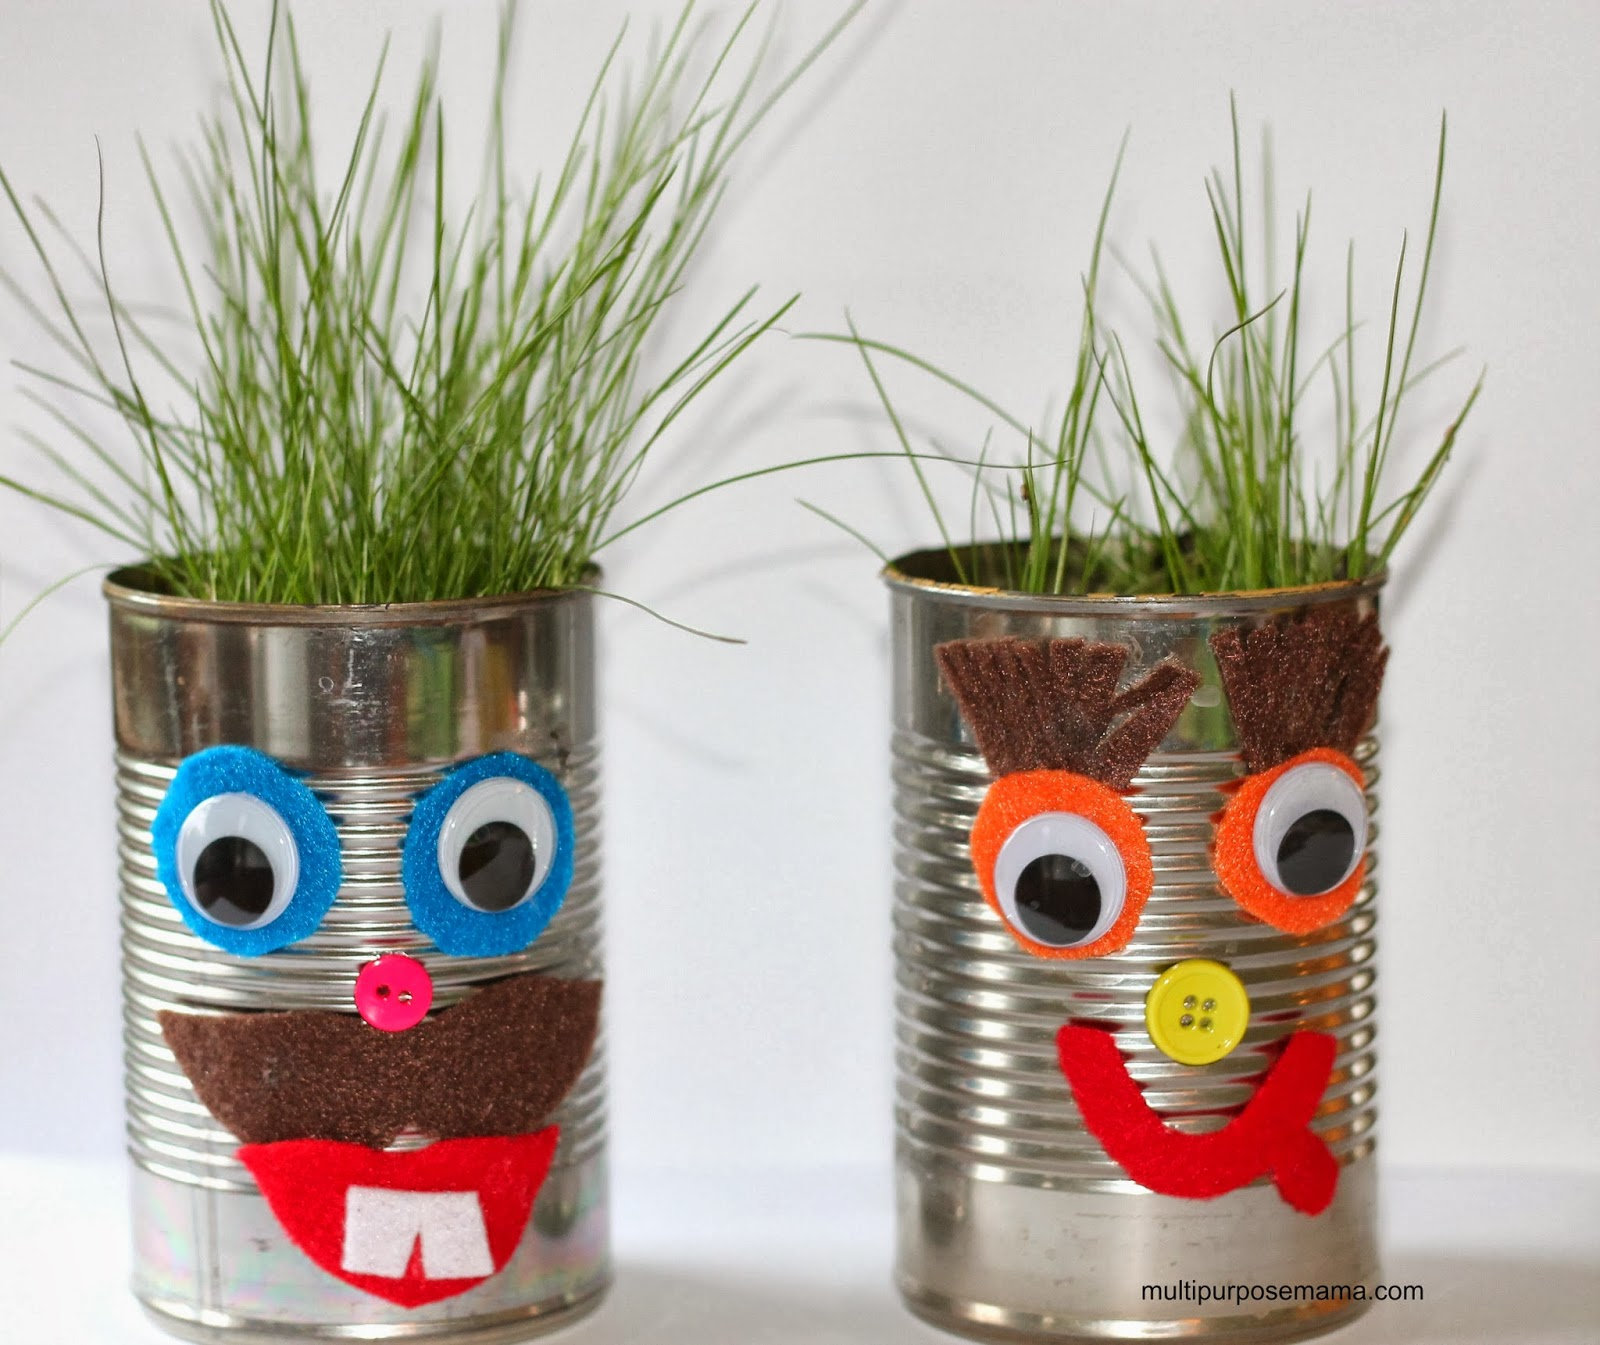 This Happy Life Grass Head Friends